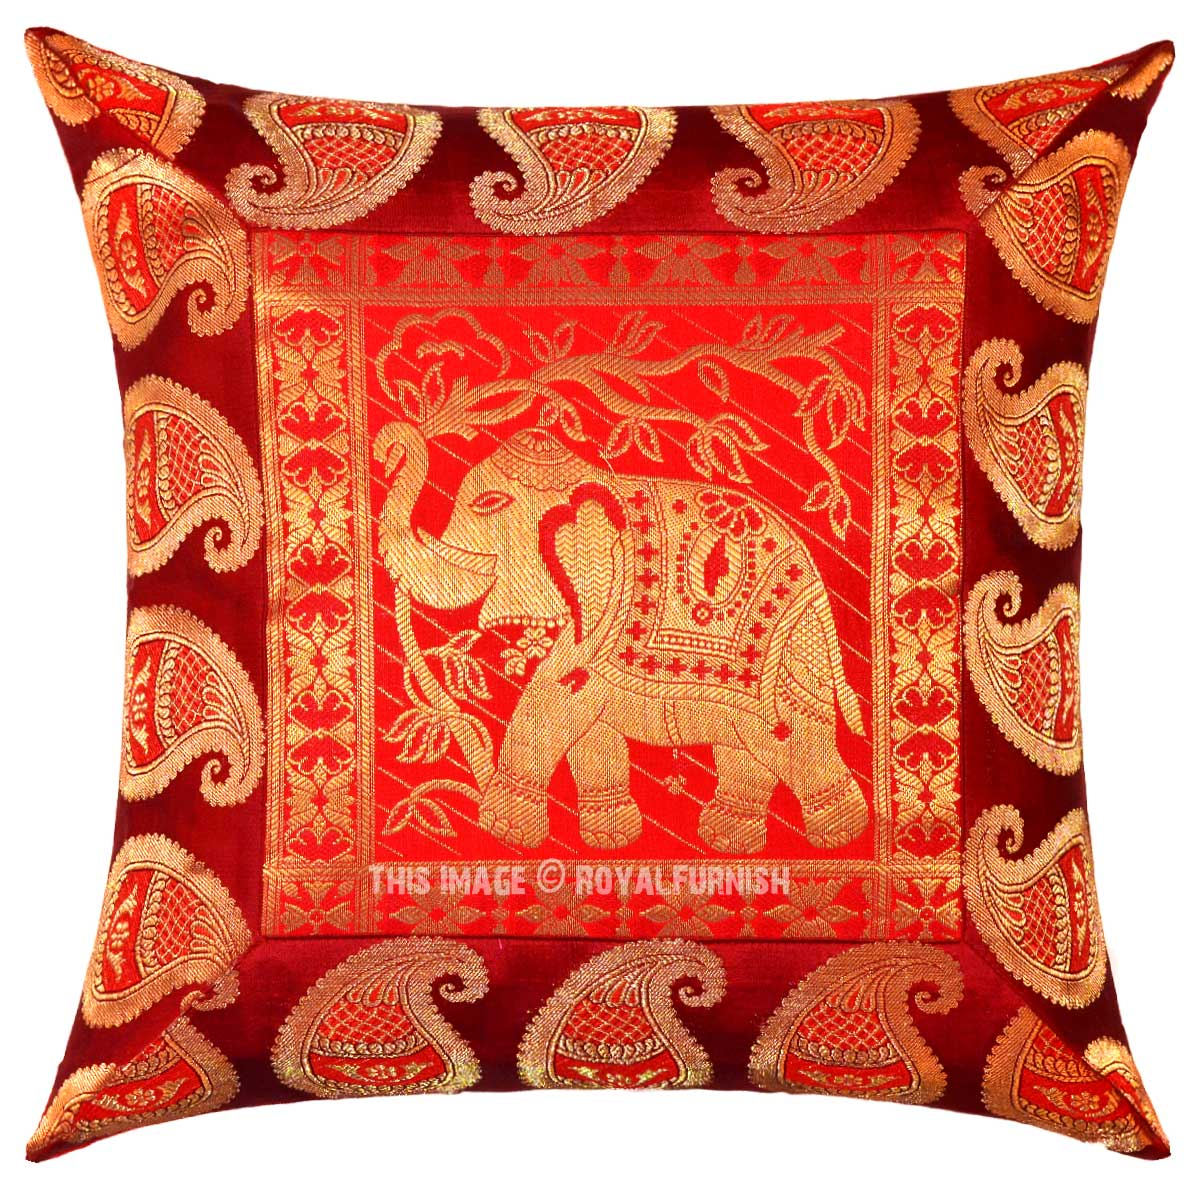 Red Silk Decorative Pillows : Red Multi Royal Elephant Featuring Handcrafted Decorative Silk Throw Pillow Cover - RoyalFurnish.com